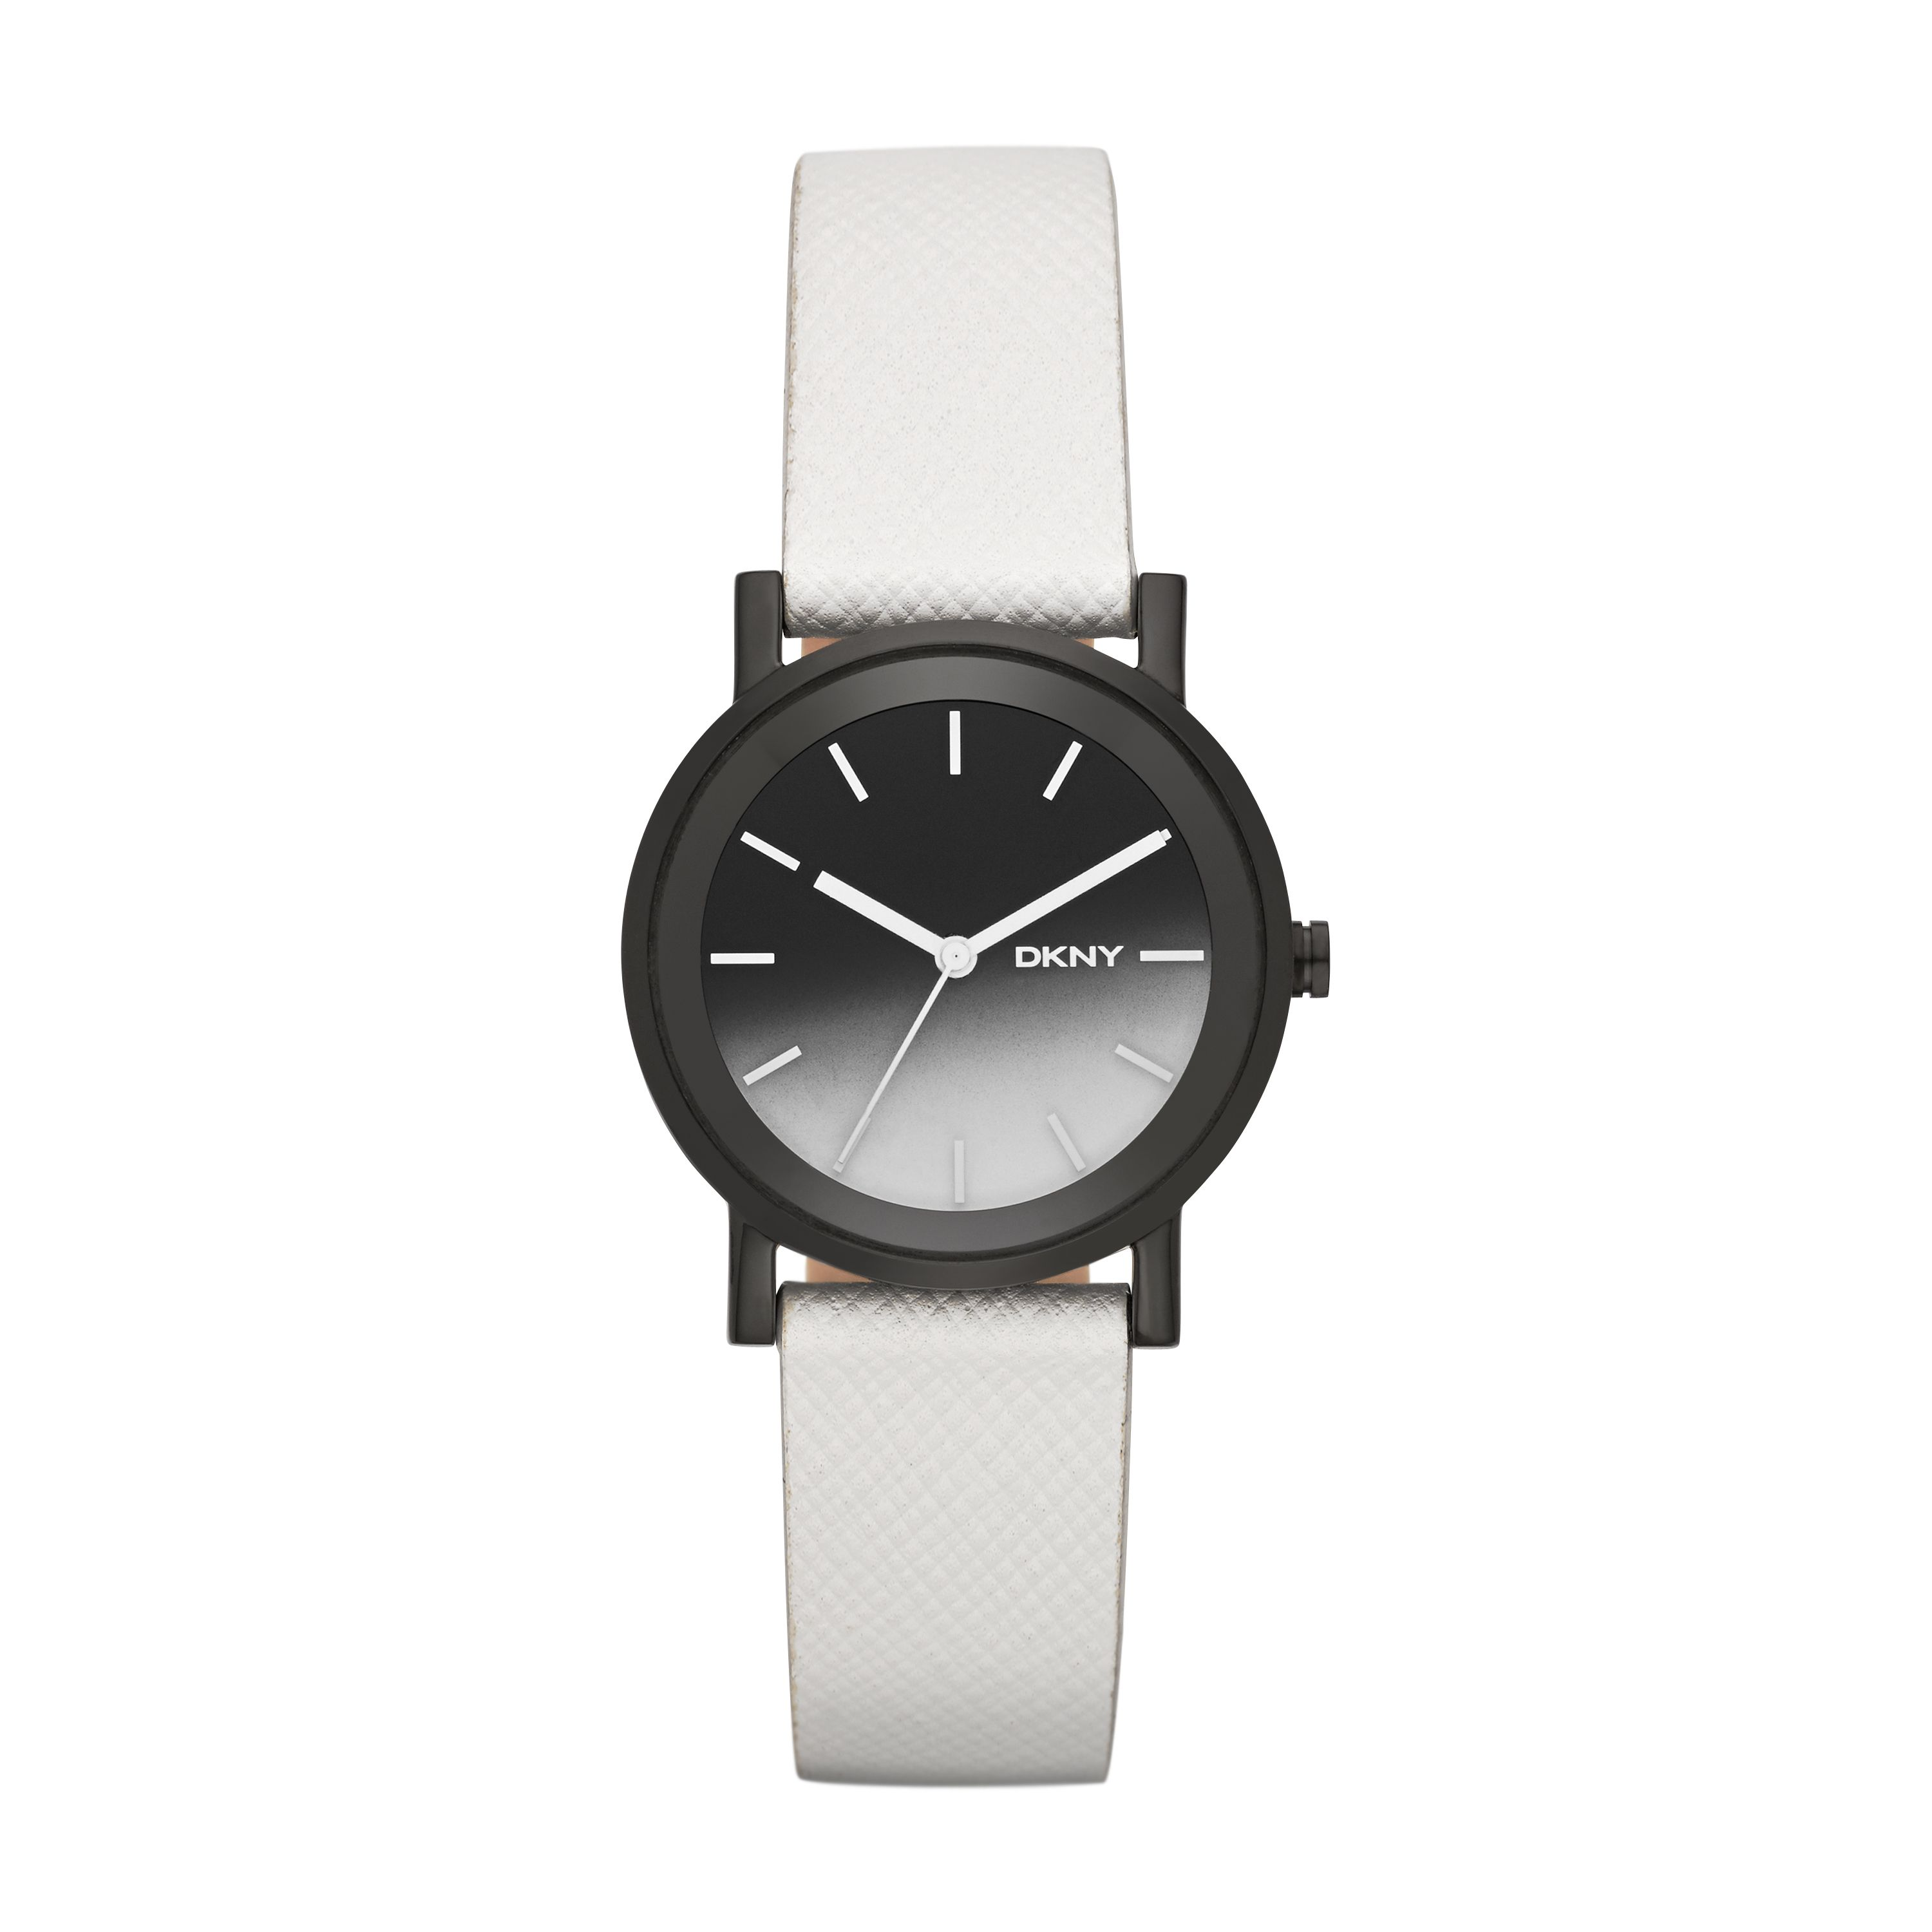 NY2185 Edge ladies white leather watch